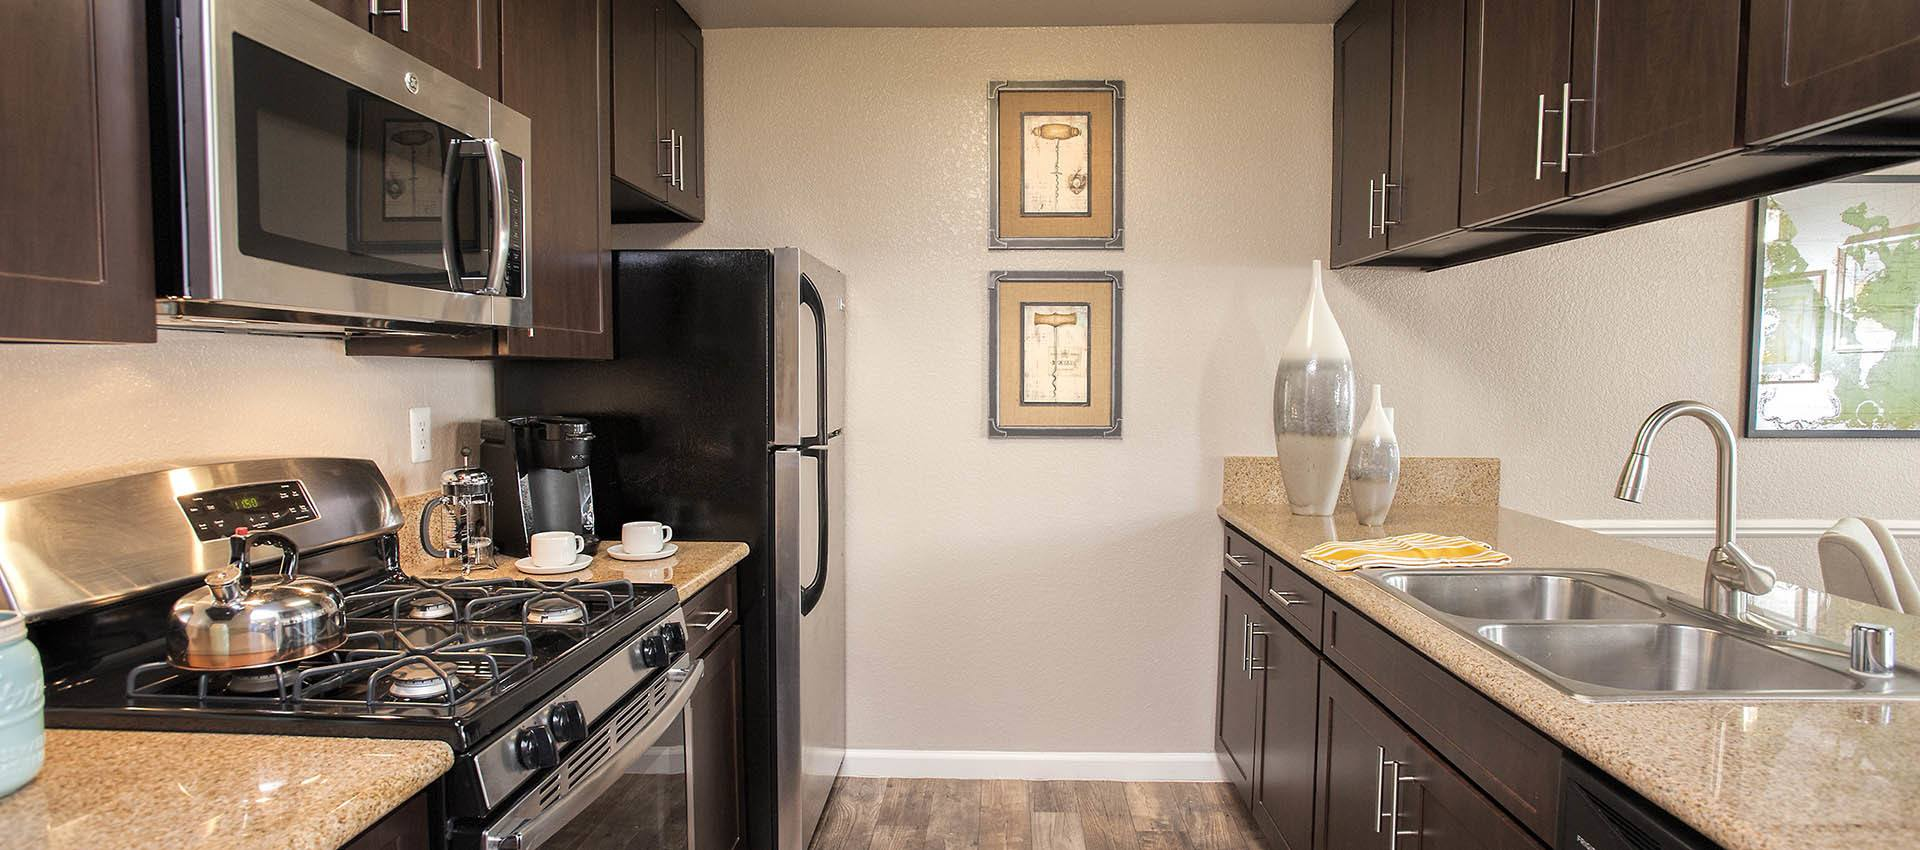 Luxury Kitchen at Deer Valley Apartment Homes in Roseville, California